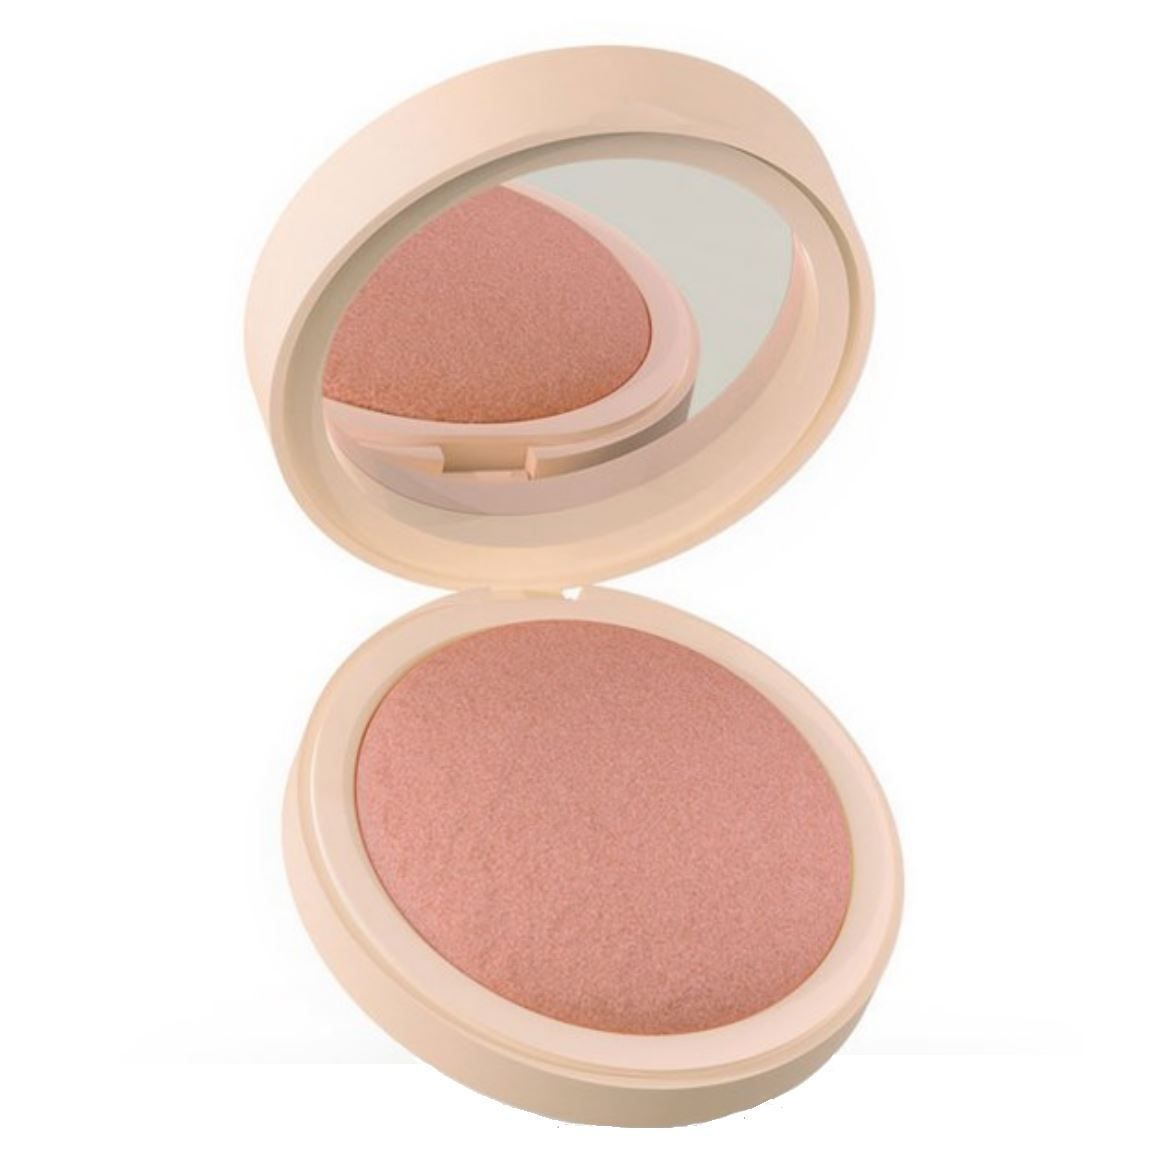 Heaven's Glow Radiant Veil Blush